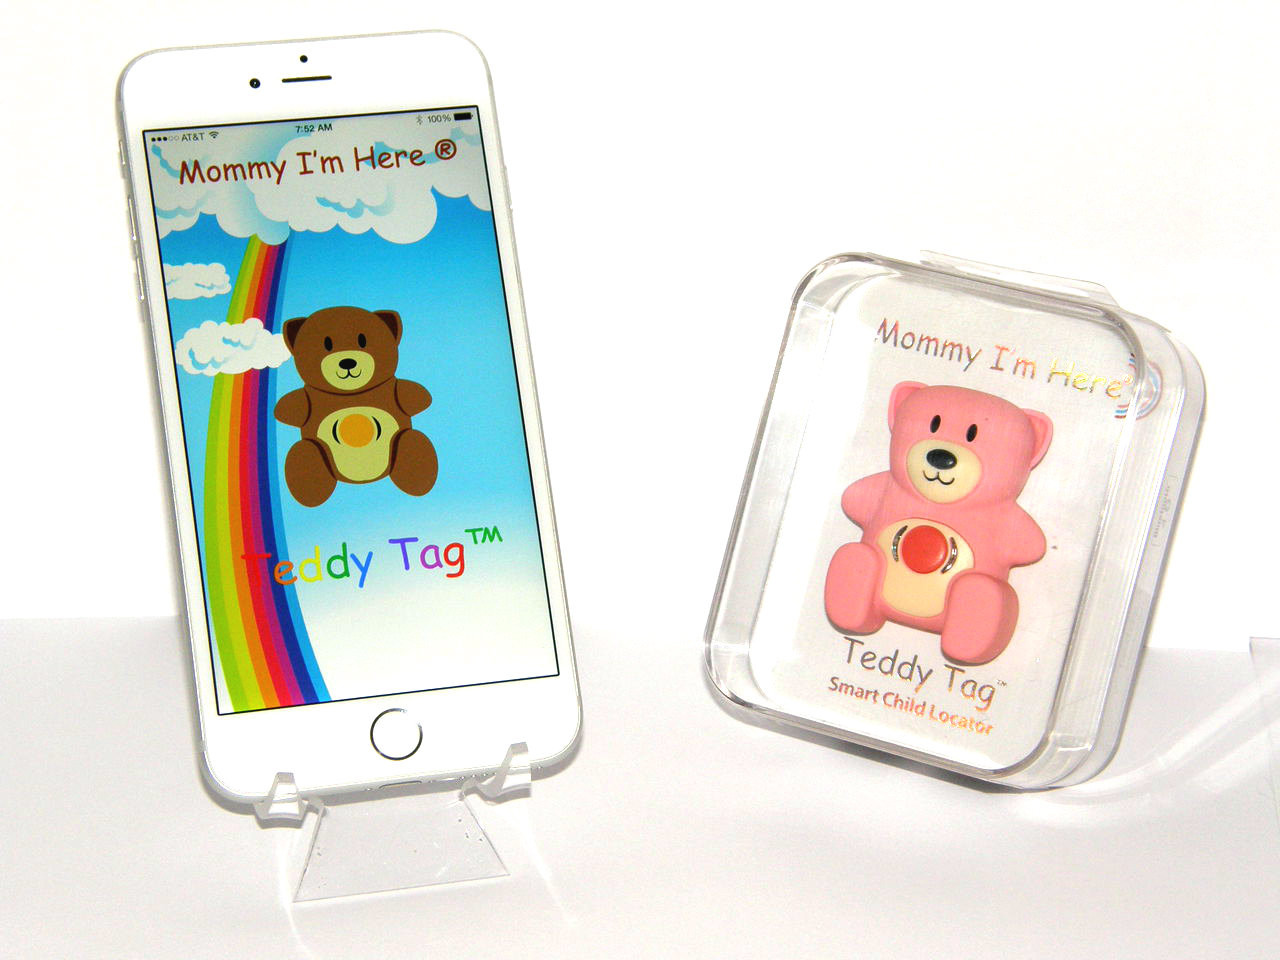 Teddy Tag™ Bluetooth™ Wearable Smart Child Locator With Free Downloadable  App for iPhone and Android mobile devices  PINK color